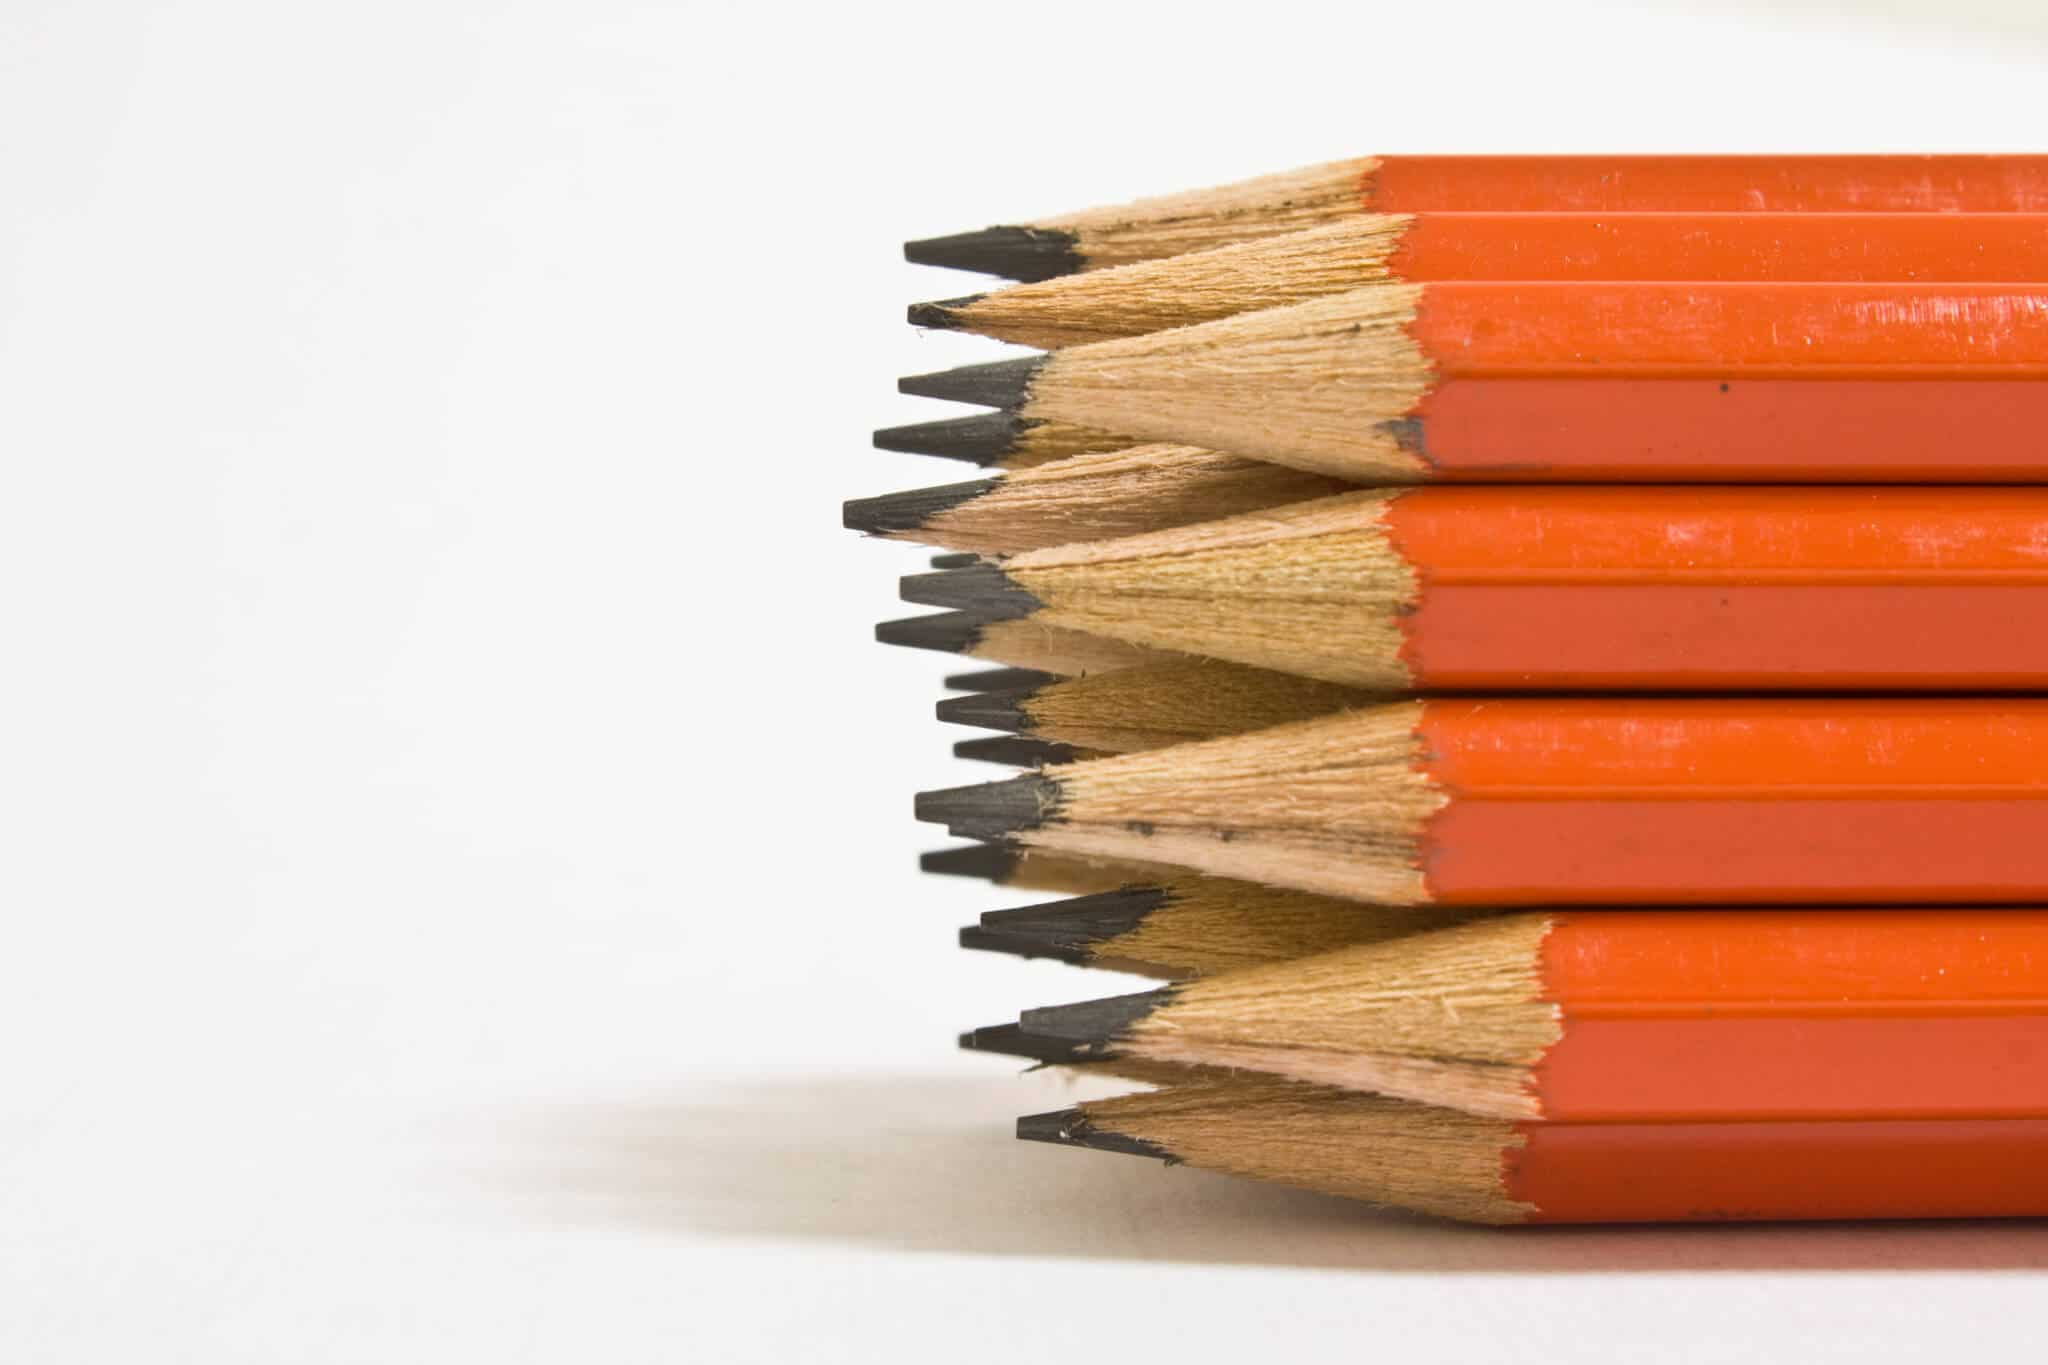 pile of identical pencils